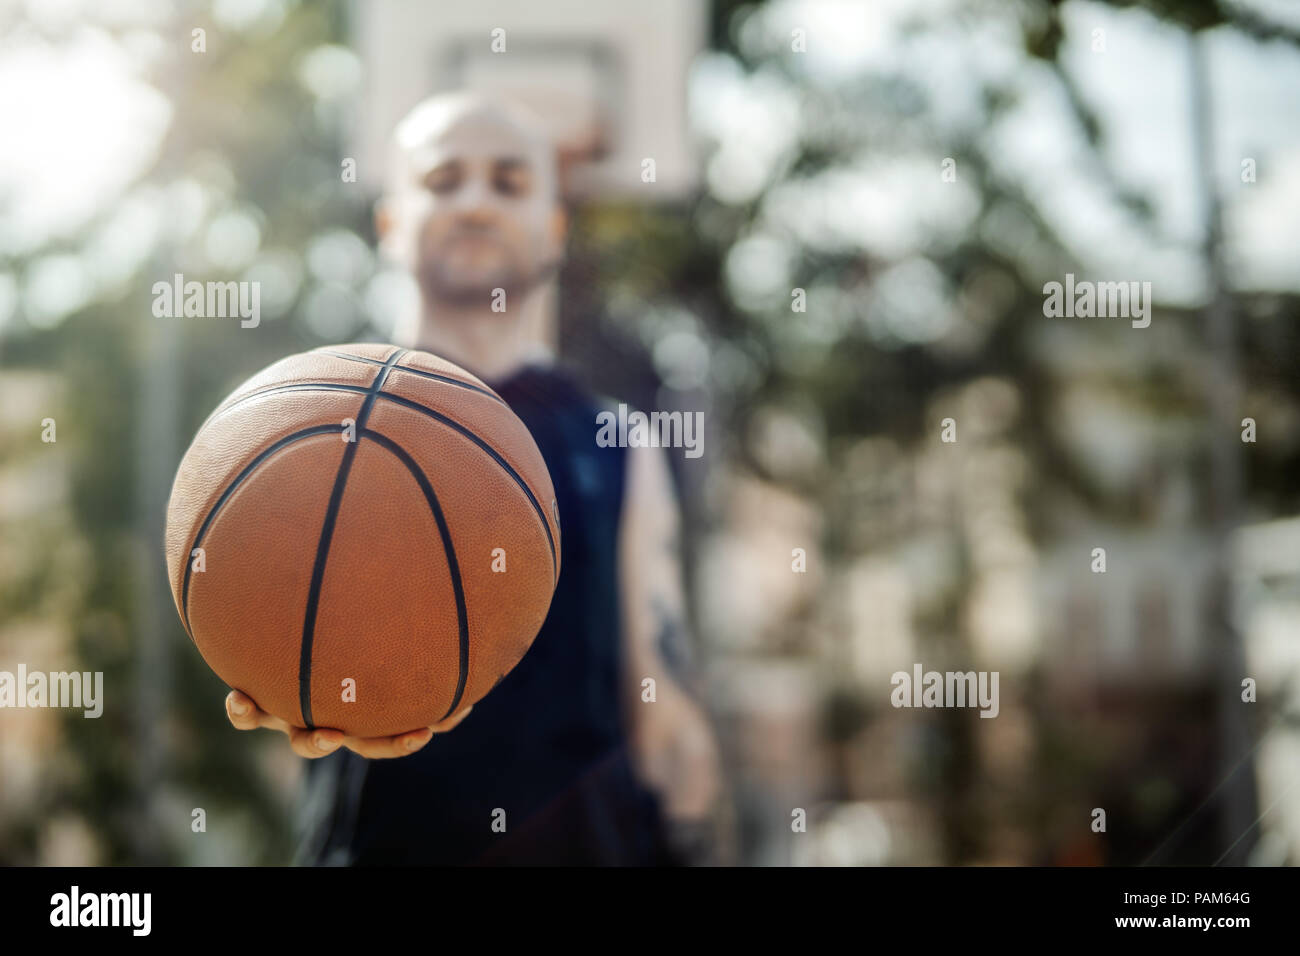 Close up of bald attractive man holding basket ball. Ball is on focus and foreground. Man, basketball hoop and board are on background and blurred. Stock Photo